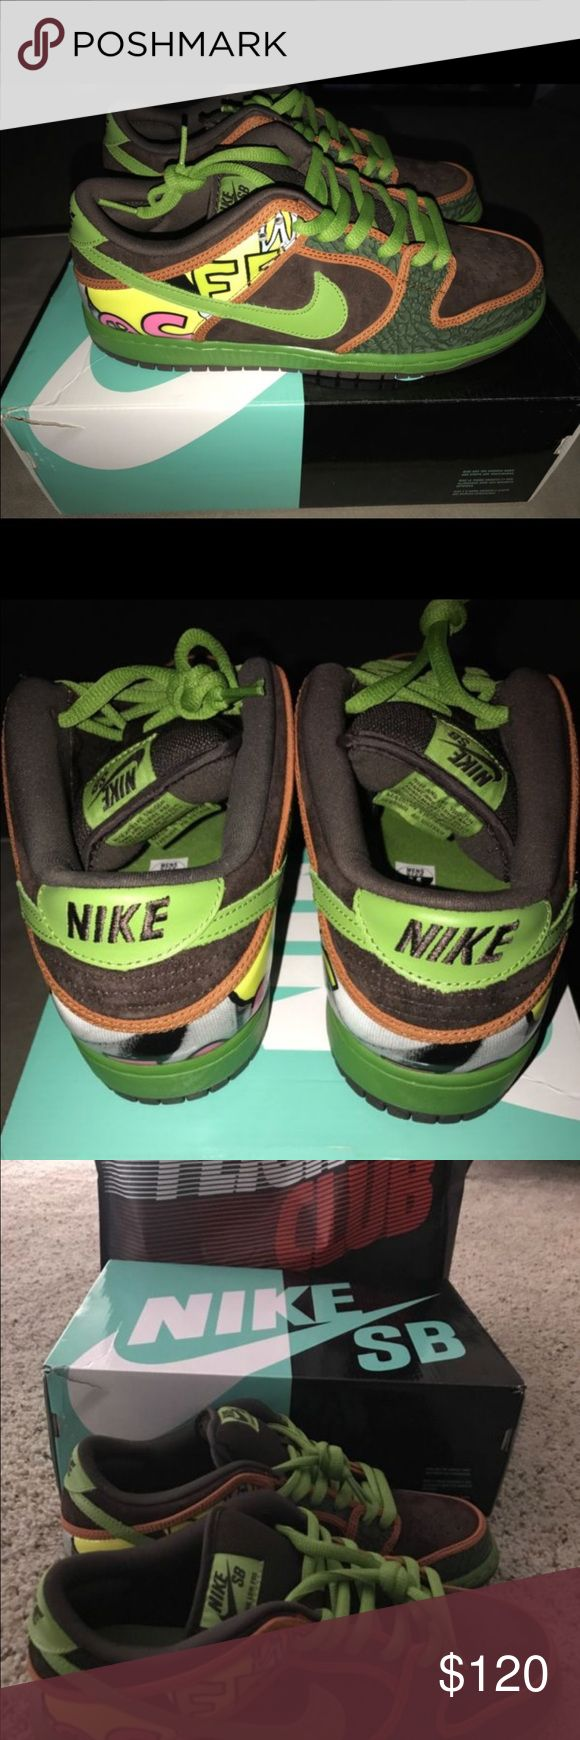 """Nike SB Dunk Low """"De La Soul"""" Rare Nike Dunk SB Low """"De La Soul"""" purchased from Flight Club New York, brand new shoes I ordered and when arrived didn't fit Nike Shoes Sneakers"""